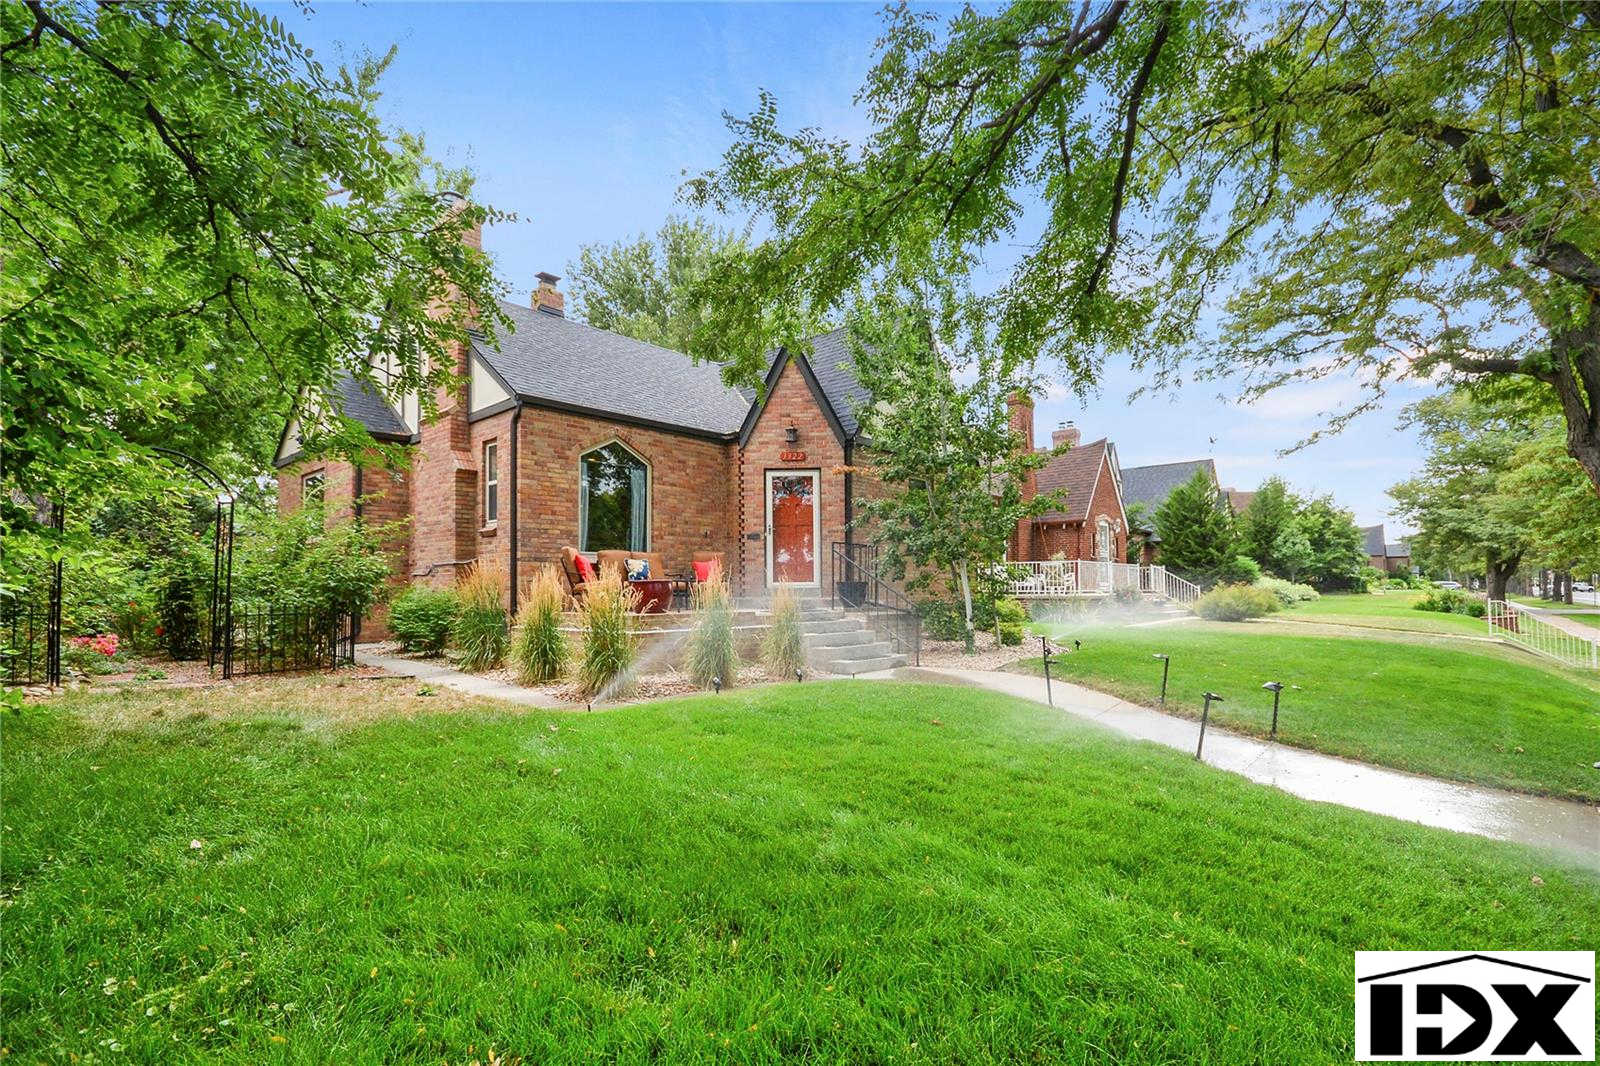 3322 West 46th Avenue, Denver, CO 80211 now has a new price of $3,800!